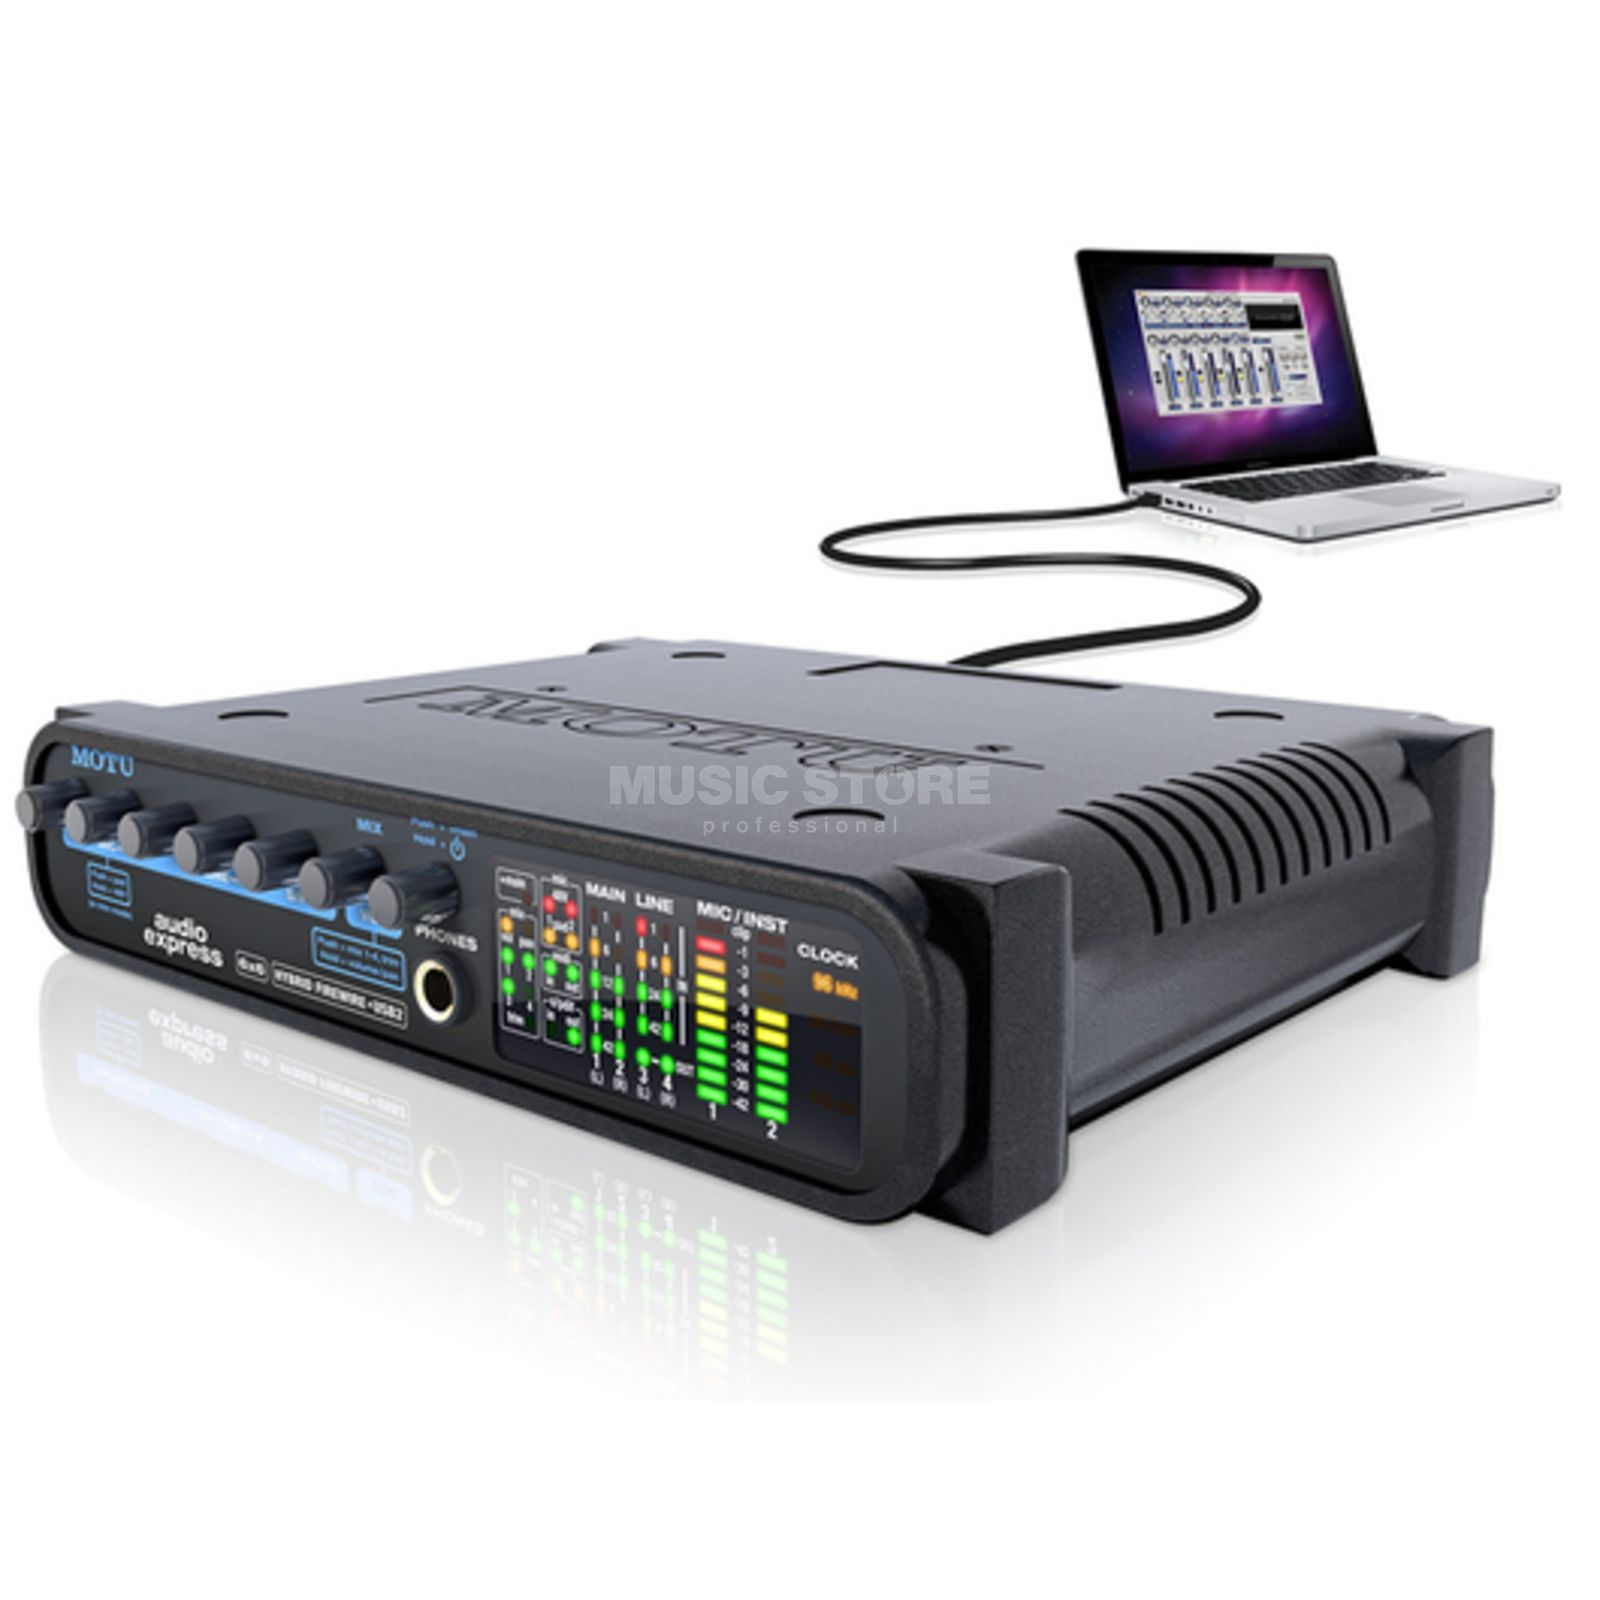 MOTU Audio Express Hybrid Audio Interface Product Image